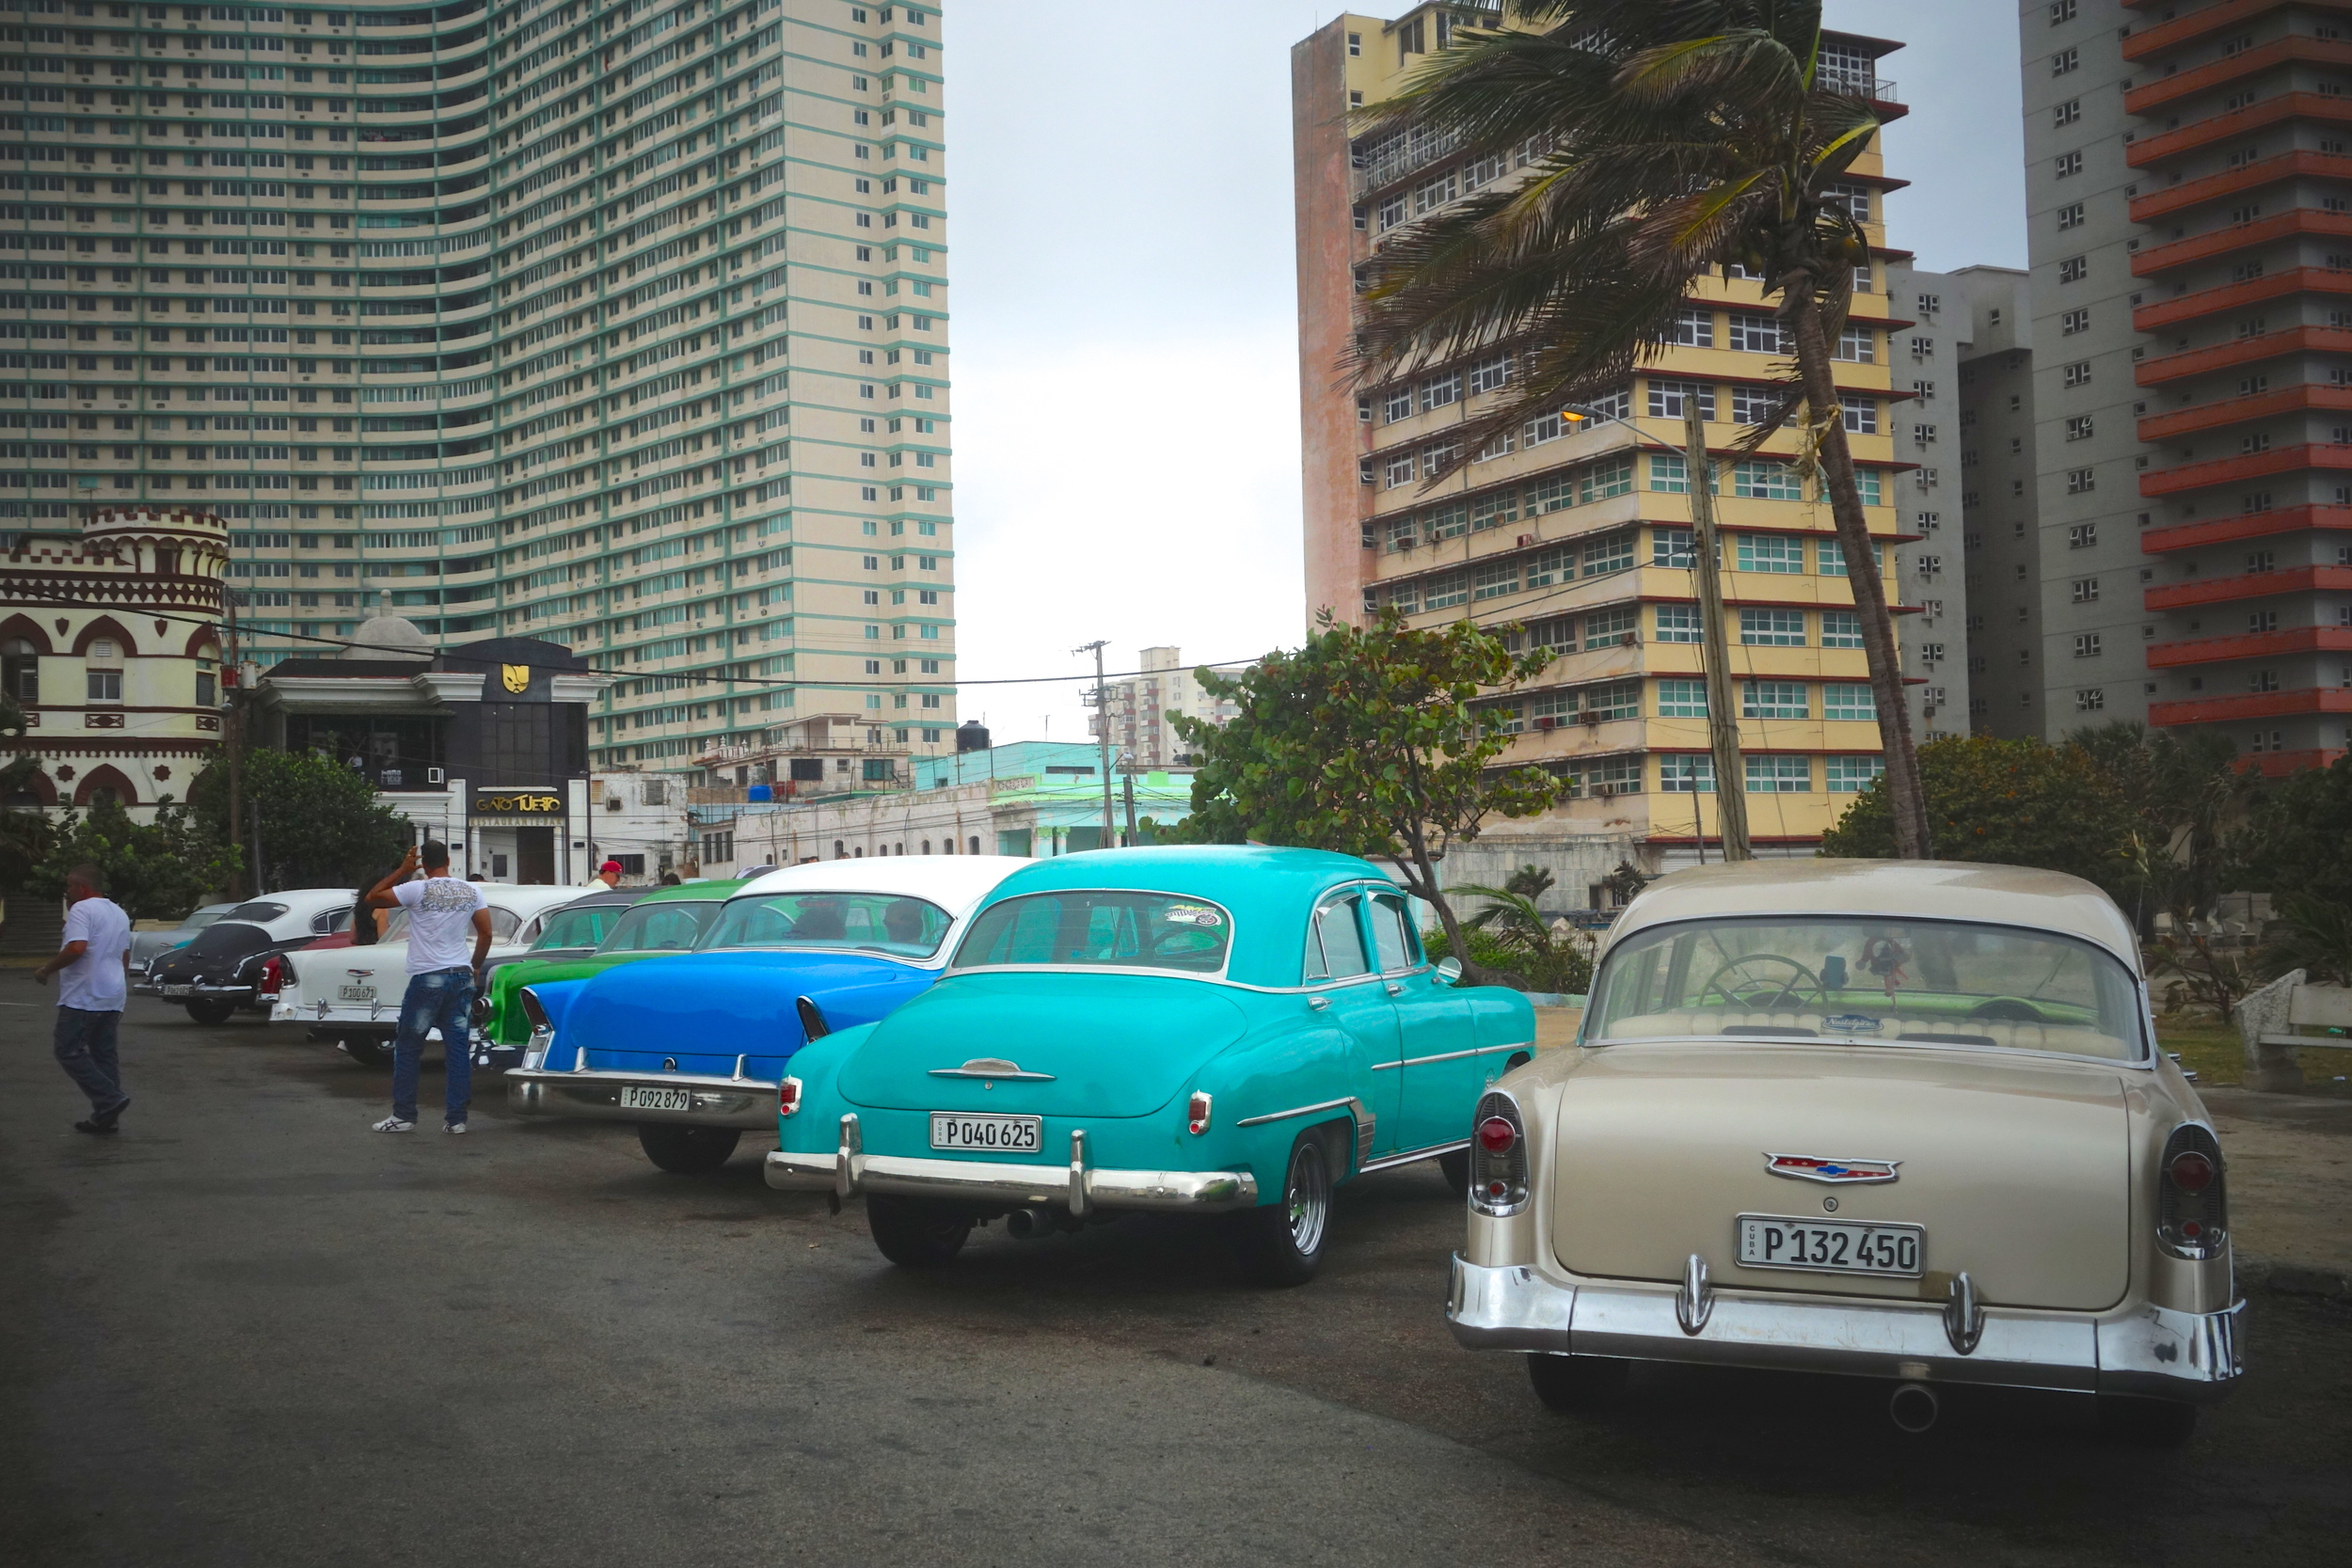 Nearby hotels were a popular playground for American celebrities and mobsters. The Havana Riviera, the big one here off to the left was built in 1956 by Meyer Lansky. It resembled and rivaled the original Riviera Casino in Las Vegas.